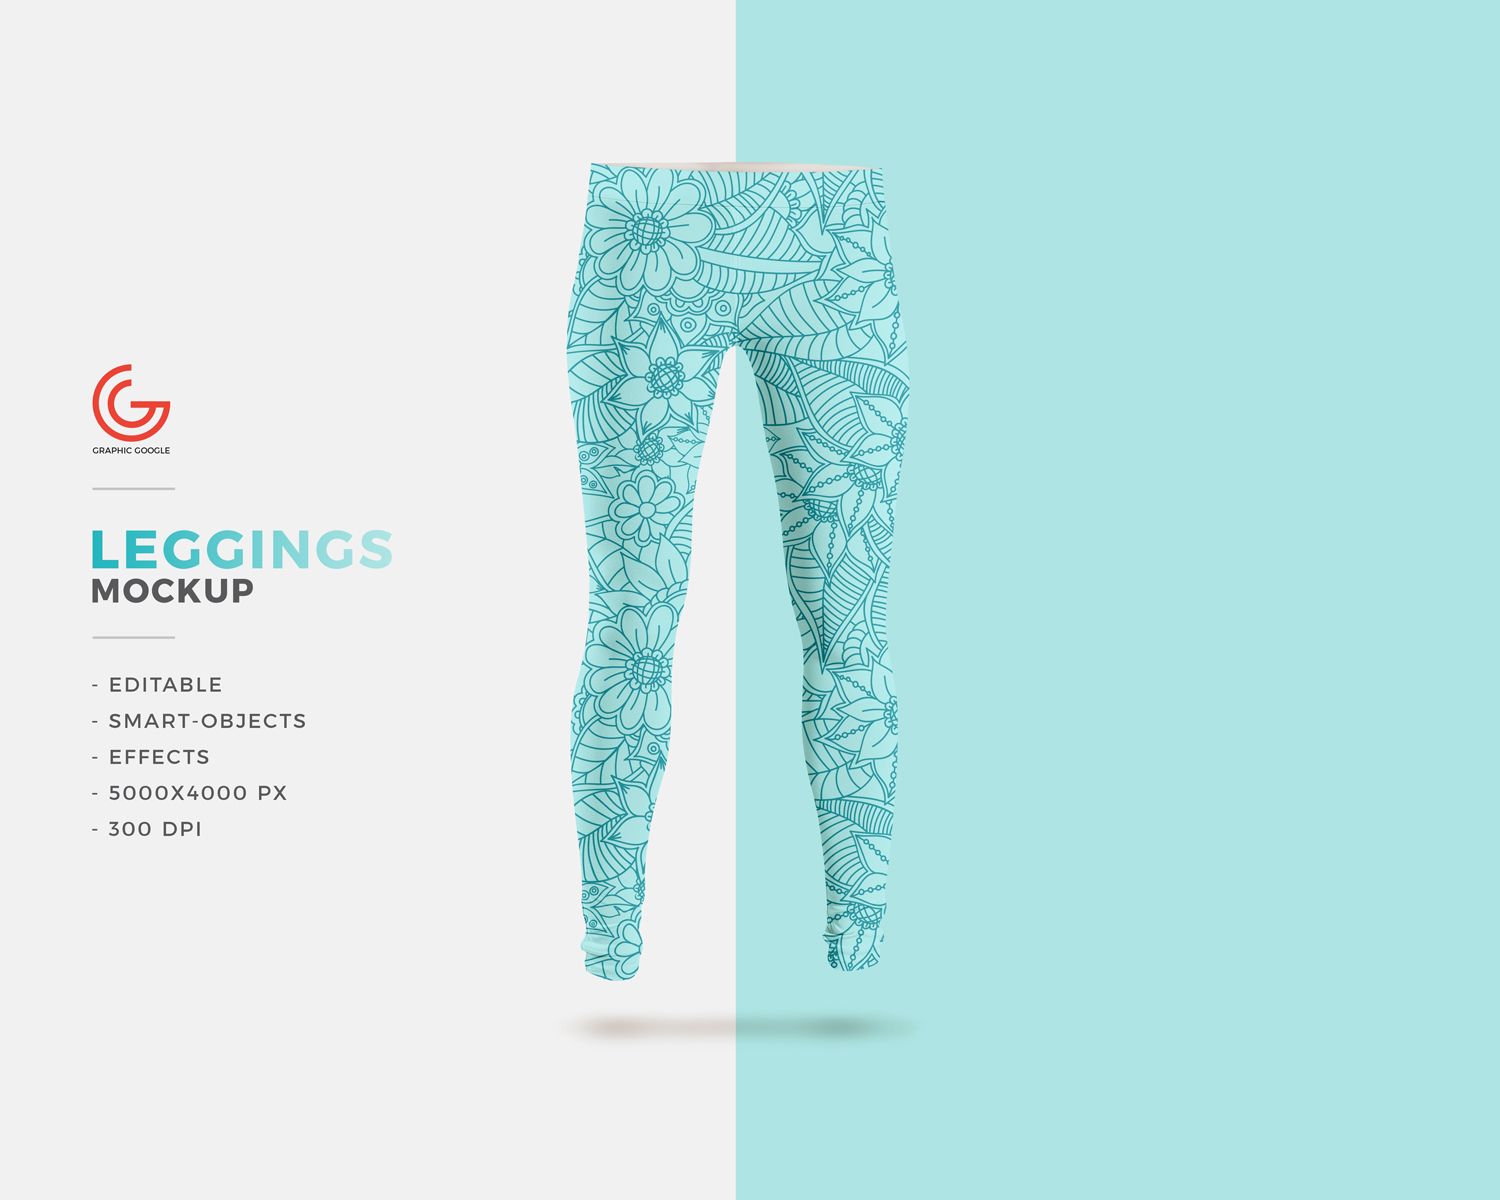 Free-Leggings-Mockup-PSD-2018-4